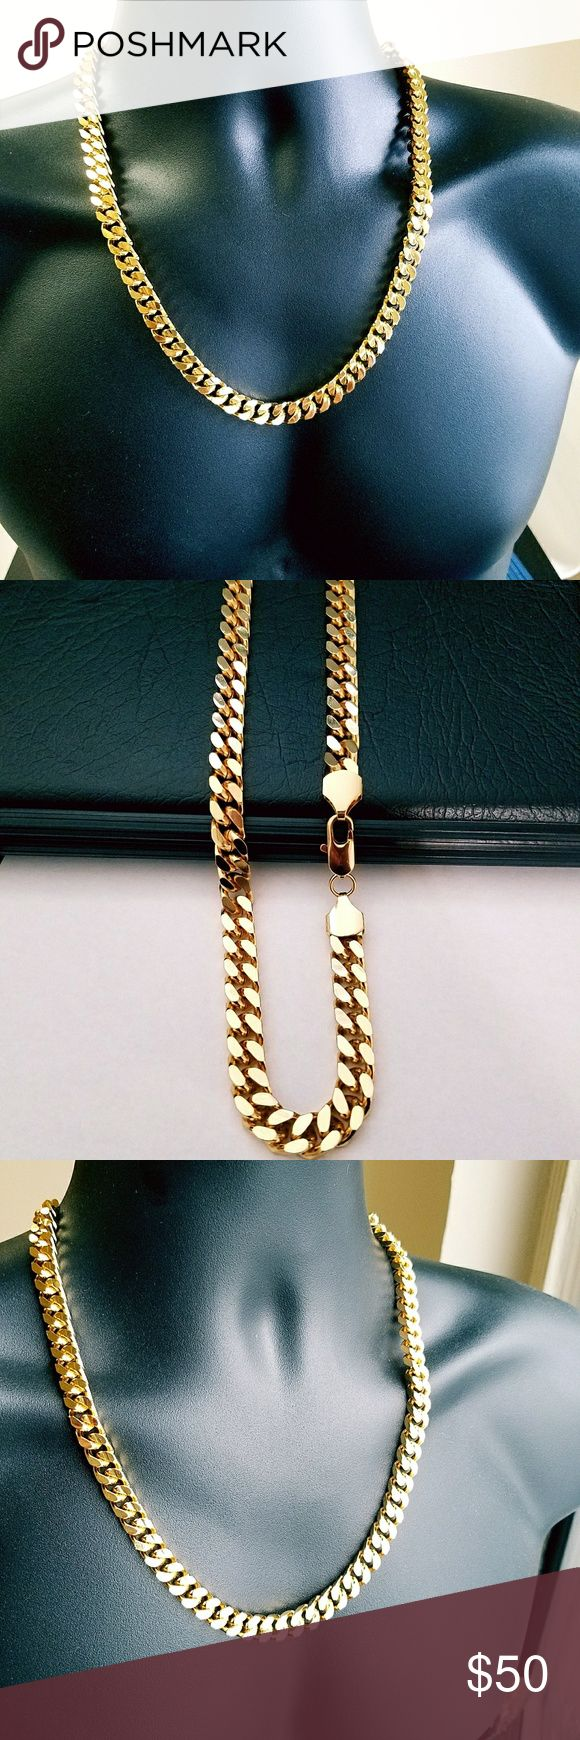 24k Gold Beautiful HIP HOP Chain/ Necklace Curb Link is made out of 24k gold filled.,Do not compare gold filled jewellery to plated because there are no comparison.  Gold Filled, is extremely long lasting and if taken care of. Gold filled is not to be confused with gold plating as filled literally has 100% more gold than gold plating.  Gold filled is much more valuable and tarnish resistant than plated,. C-086 Accessories Jewelry